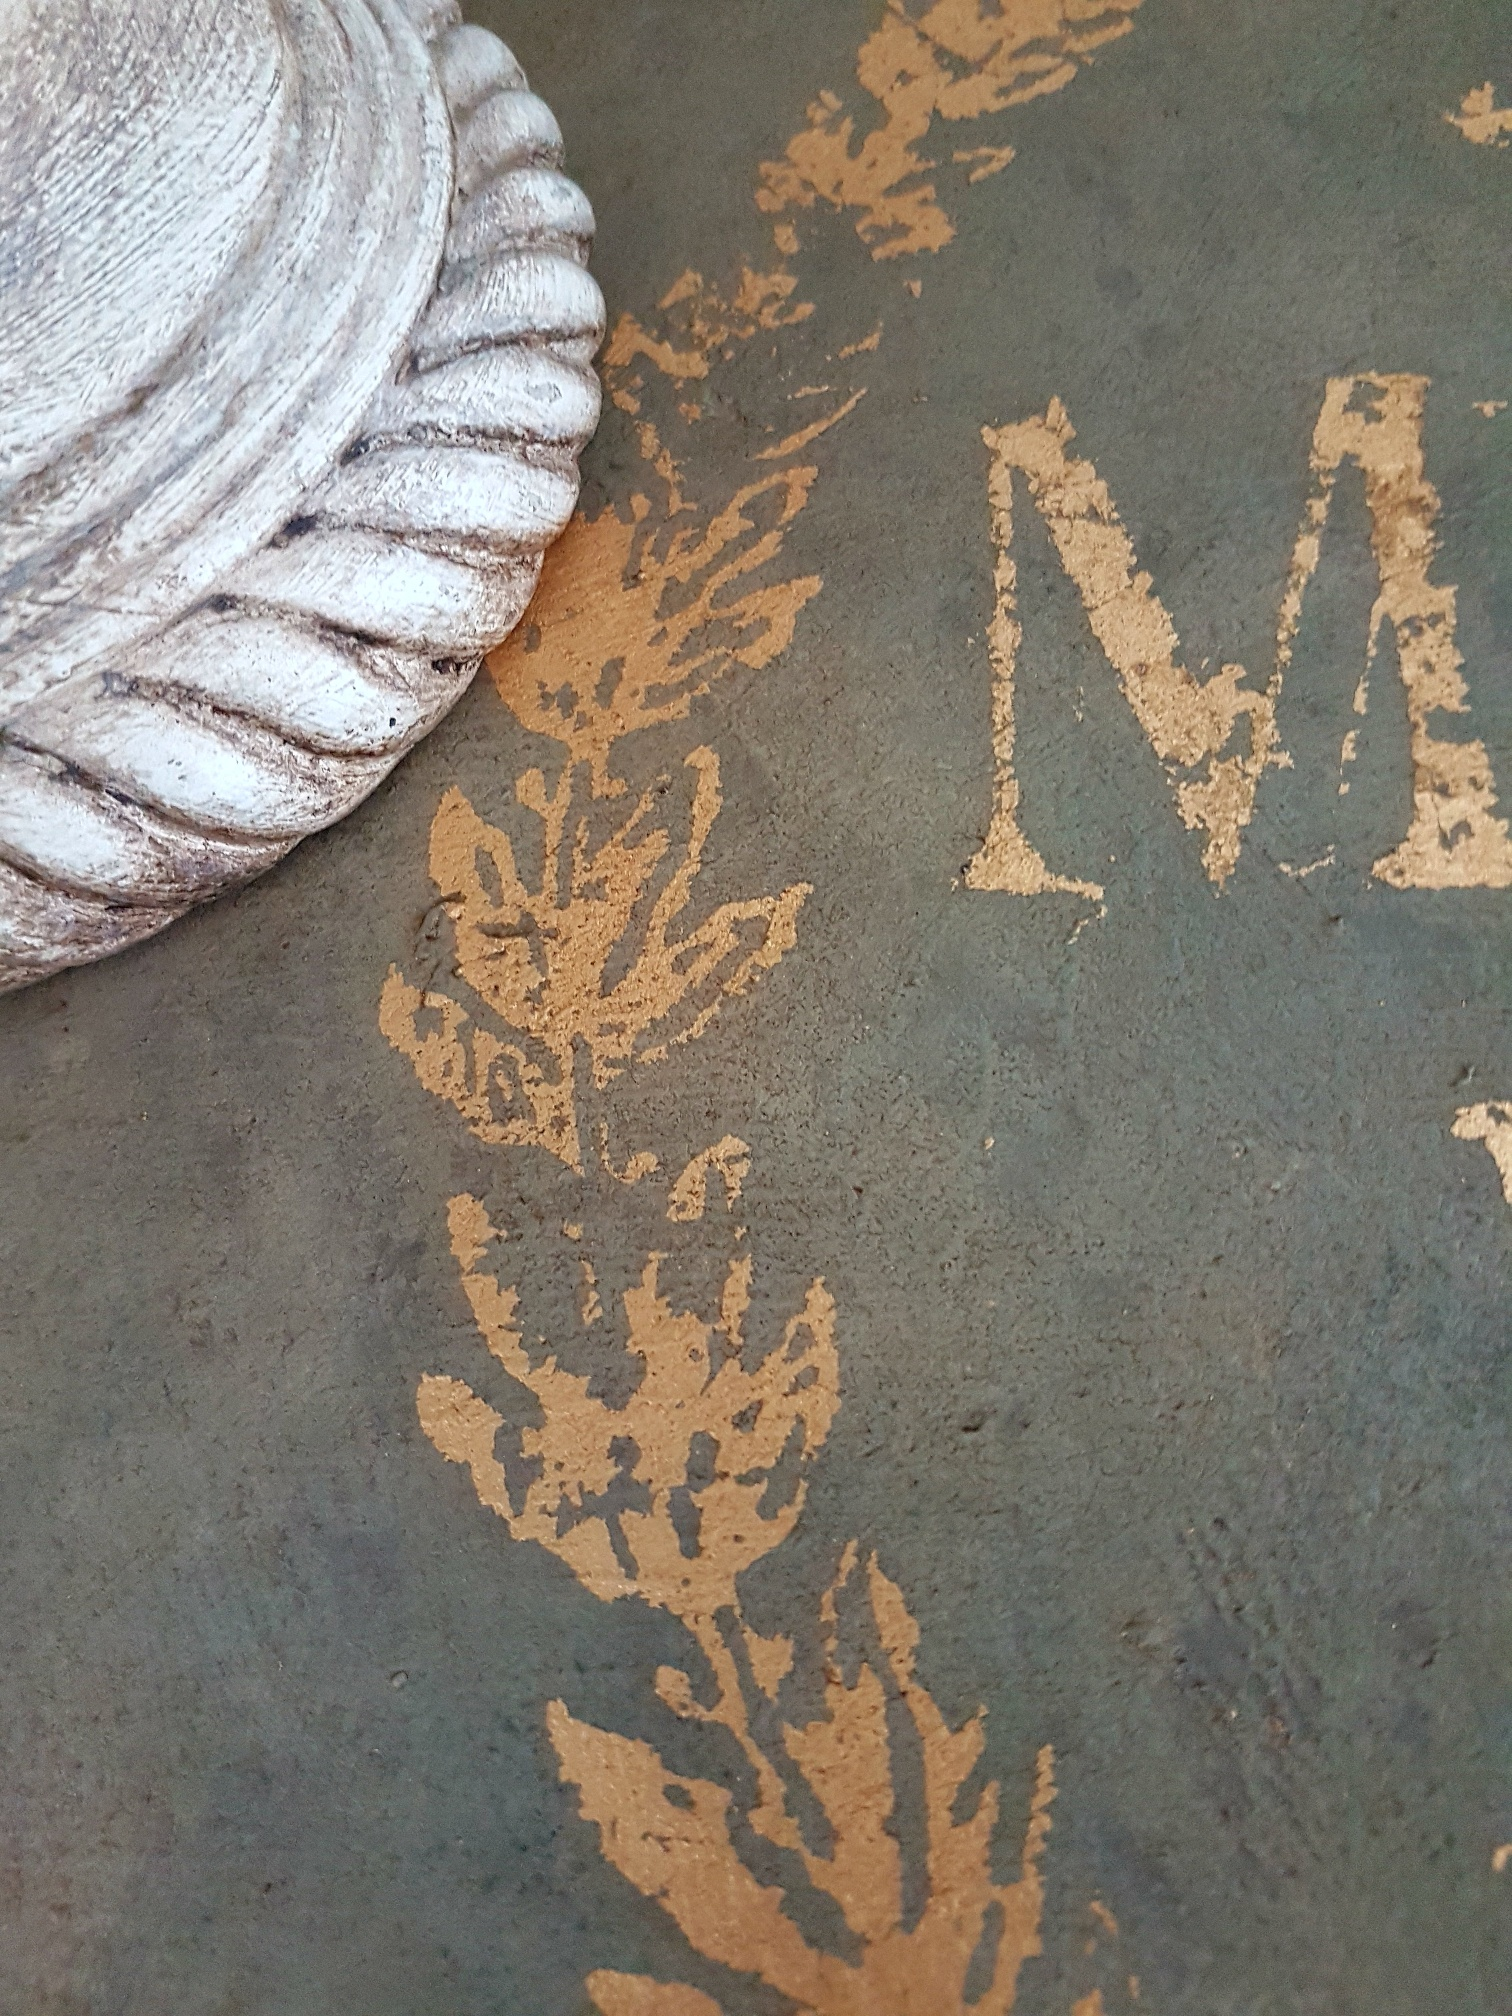 The powder not only added a vintage aged look but added another layer of interesting color too. Magdalena applied a clear and dark wax to seal the piece and the wax brought out more of the brown tones from the powder. How cool is that?